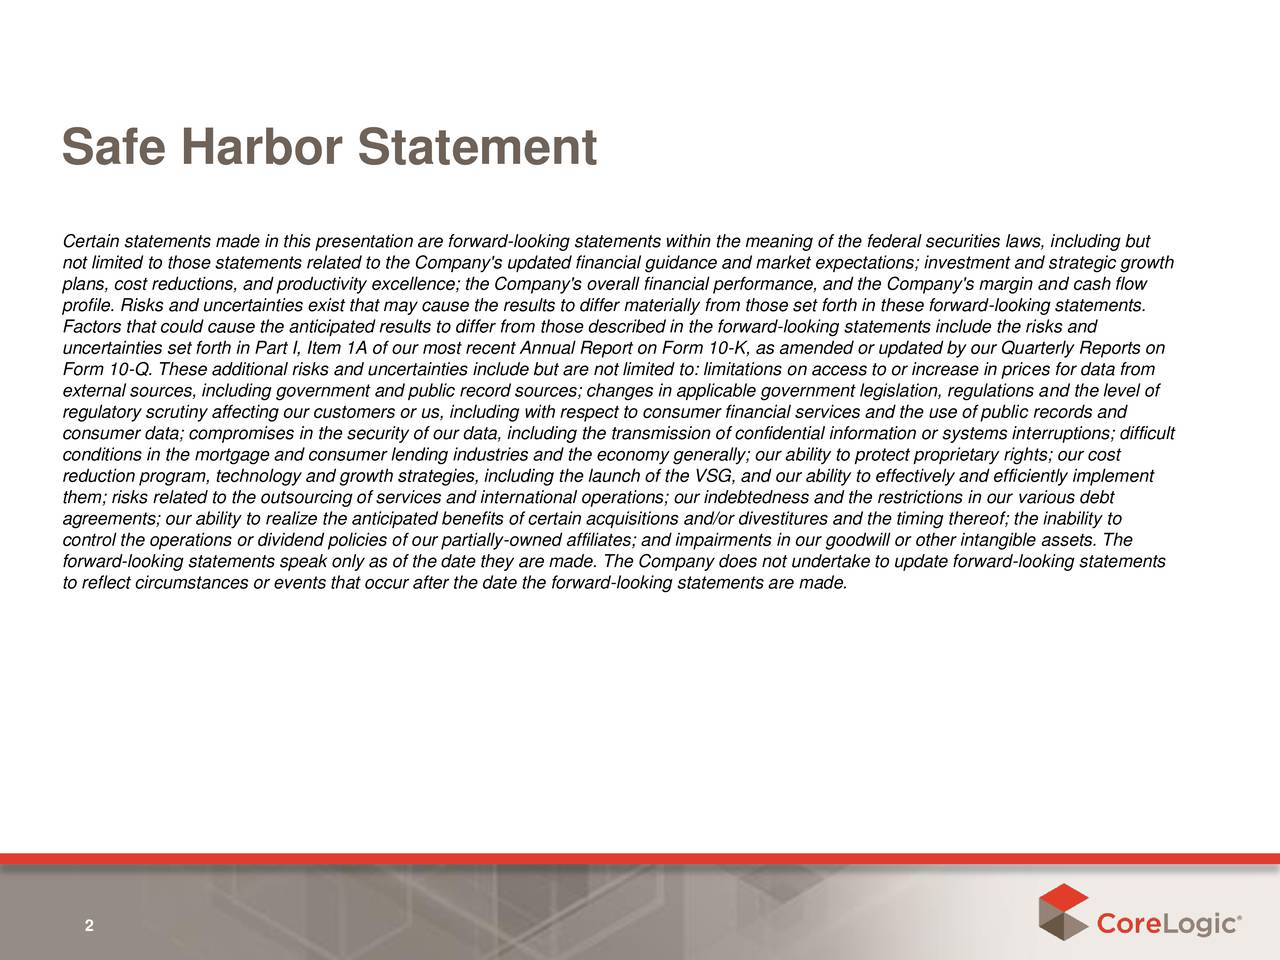 Certain statements made in this presentation are forward-looking statements within the meaning of the federal securities laws, including but not limited to those statements related to the Company's updated financial guidance and market expectations; investment and strategic growth plans, cost reductions, and productivity excellence; the Company's overall financial performance, and the Company's margin and cash flow profile. Risks and uncertainties exist that may cause the results to differ materially from those set forth in these forward-looking statements. Factors that could cause the anticipated results to differ from those described in the forward-looking statements include the risks and uncertainties set forth in Part I, Item 1A of our most recent Annual Report on Form 10-K, as amended or updated by our Quarterly Reports on Form 10-Q. These additional risks and uncertainties include but are not limited to: limitations on access to or increase in prices for data from external sources, including government and public record sources; changes in applicable government legislation, regulations and the level of regulatory scrutiny affecting our customers or us, including with respect to consumer financial services and the use of public records and consumer data; compromises in the security of our data, including the transmission of confidential information or systems interruptions; difficult conditions in the mortgage and consumer lending industries and the economy generally; our ability to protect proprietary rights; our cost reduction program, technology and growth strategies, including the launch of the VSG, and our ability to effectively and efficiently implement them; risks related to the outsourcing of services and international operations; our indebtedness and the restrictions in our various debt agreements; our ability to realize the anticipated benefits of certain acquisitions and/or divestitures and the timing thereof; the inability to control the operations 